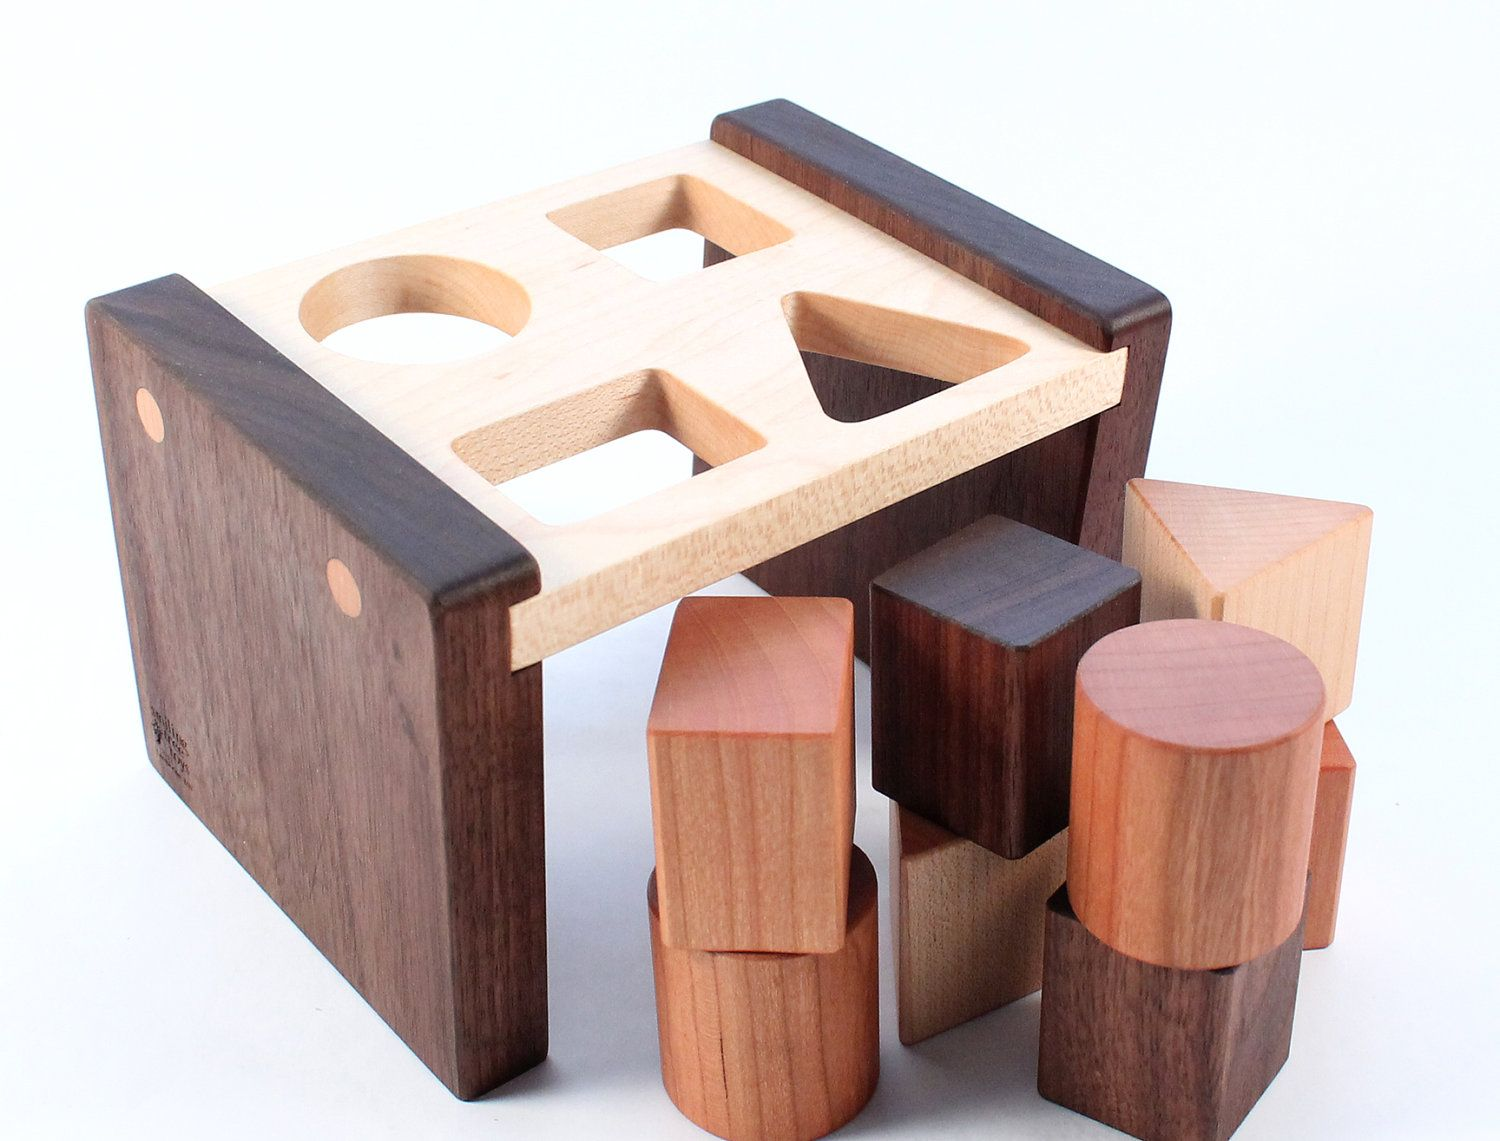 Baby Wooden Toys : Wooden shape sorter toy a natural and organic